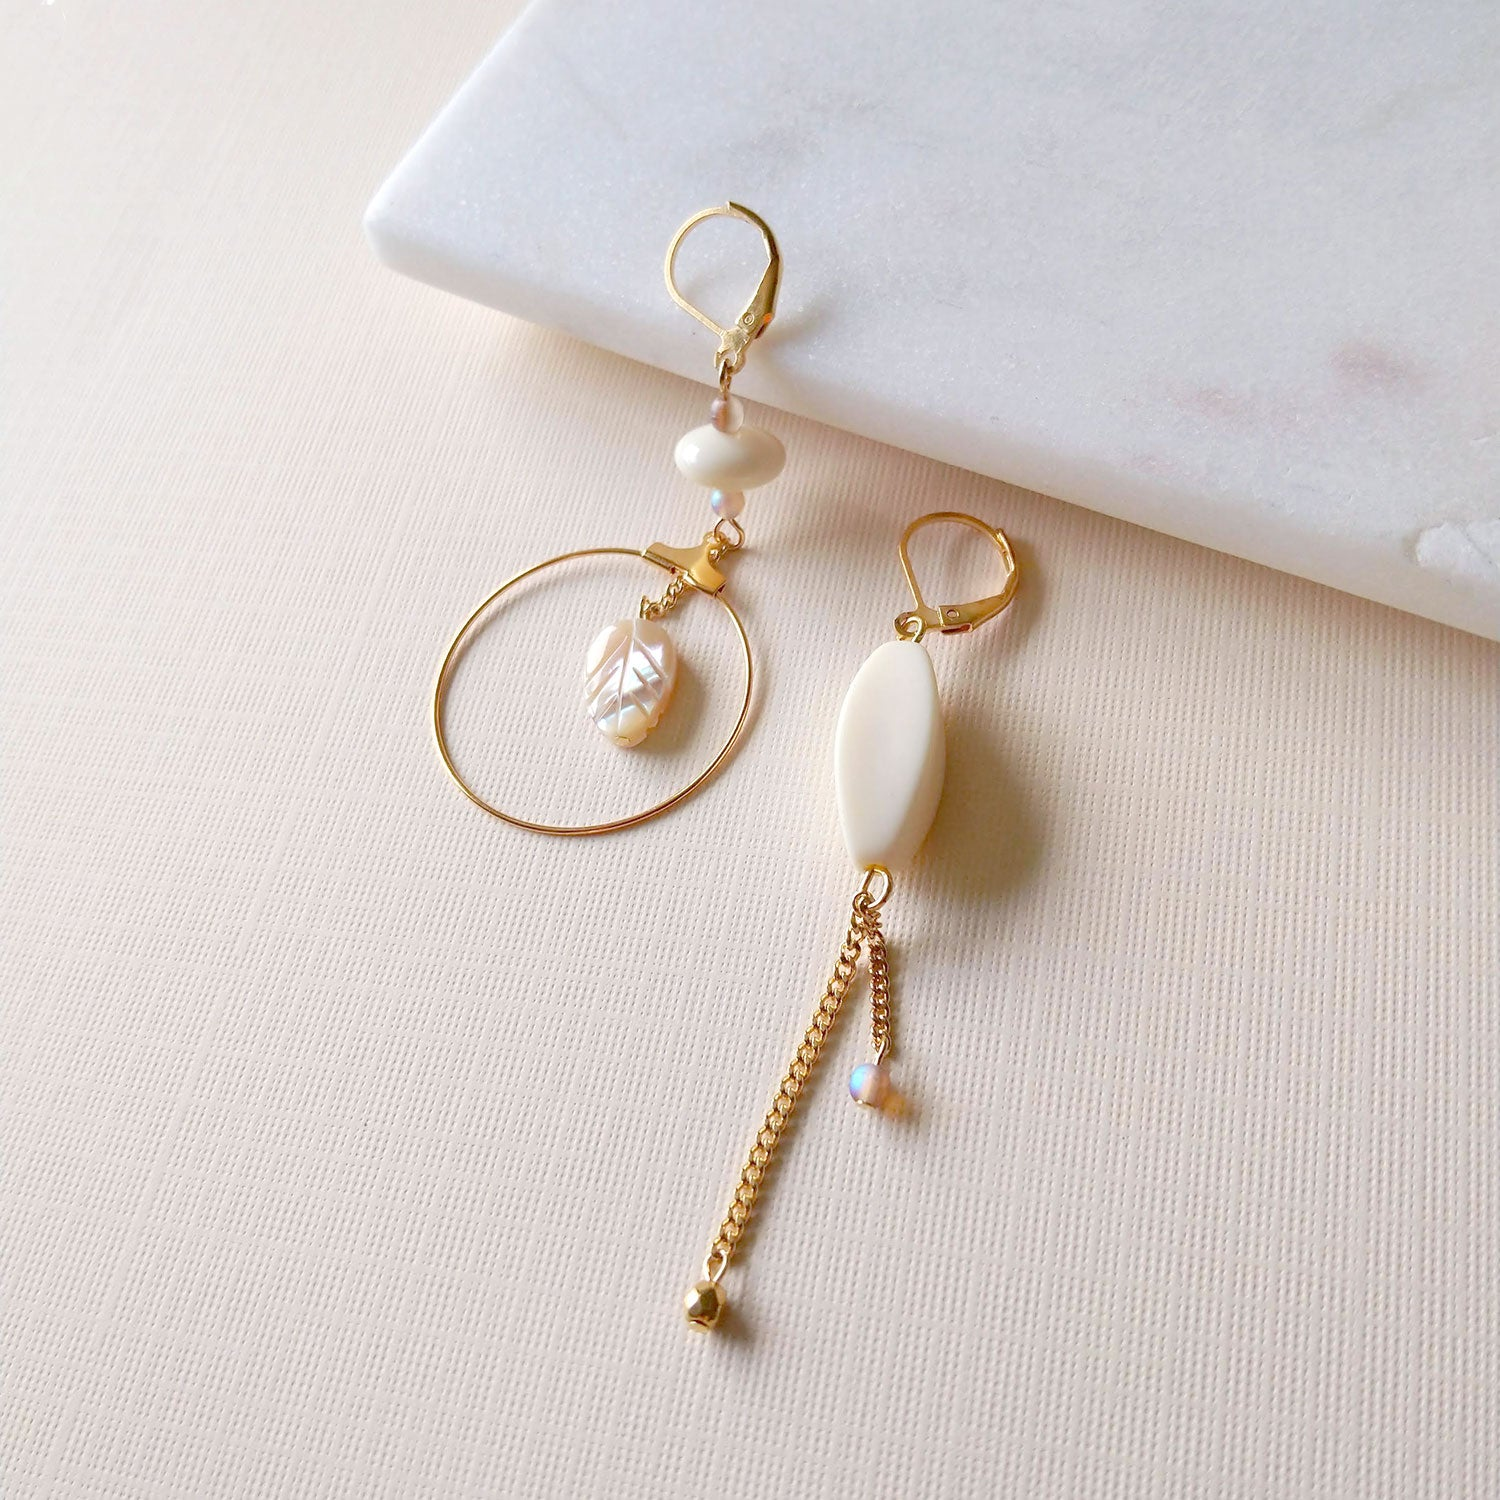 Angelique Earrings (SD1508)